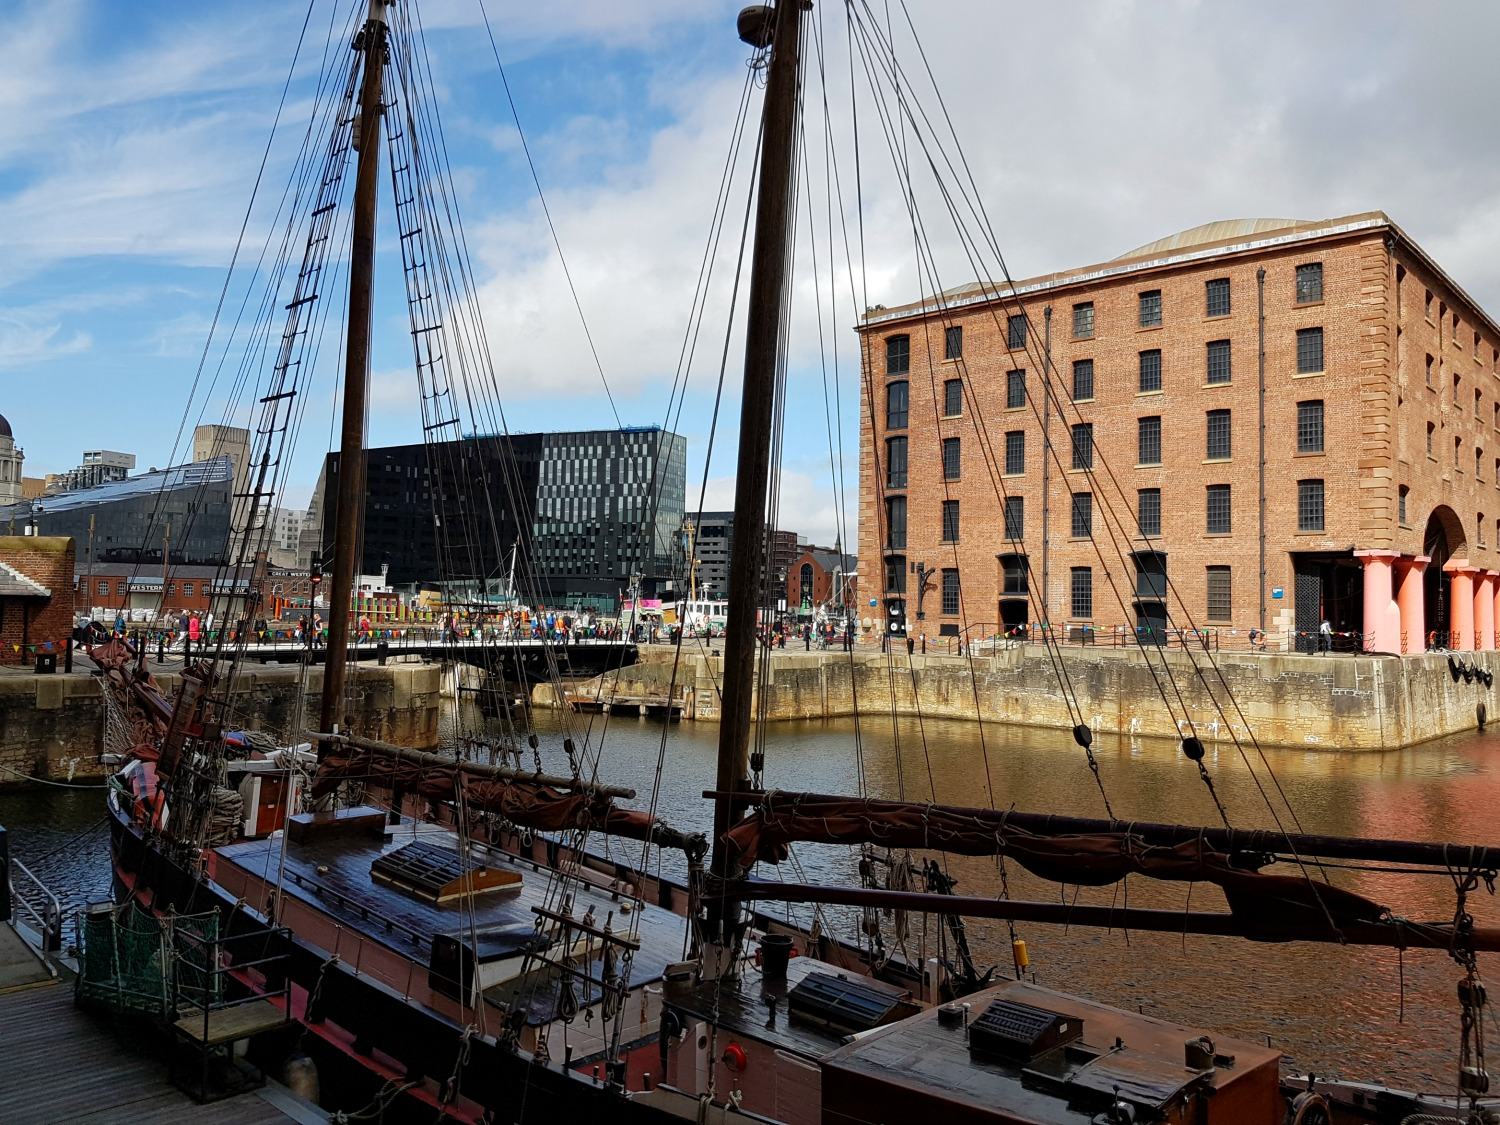 Albert Dock review - our visit to Albert Dock in Liverpool for a great family day out, exploring the restaurants, attractions including Mattel Play and spotting boats and bunting